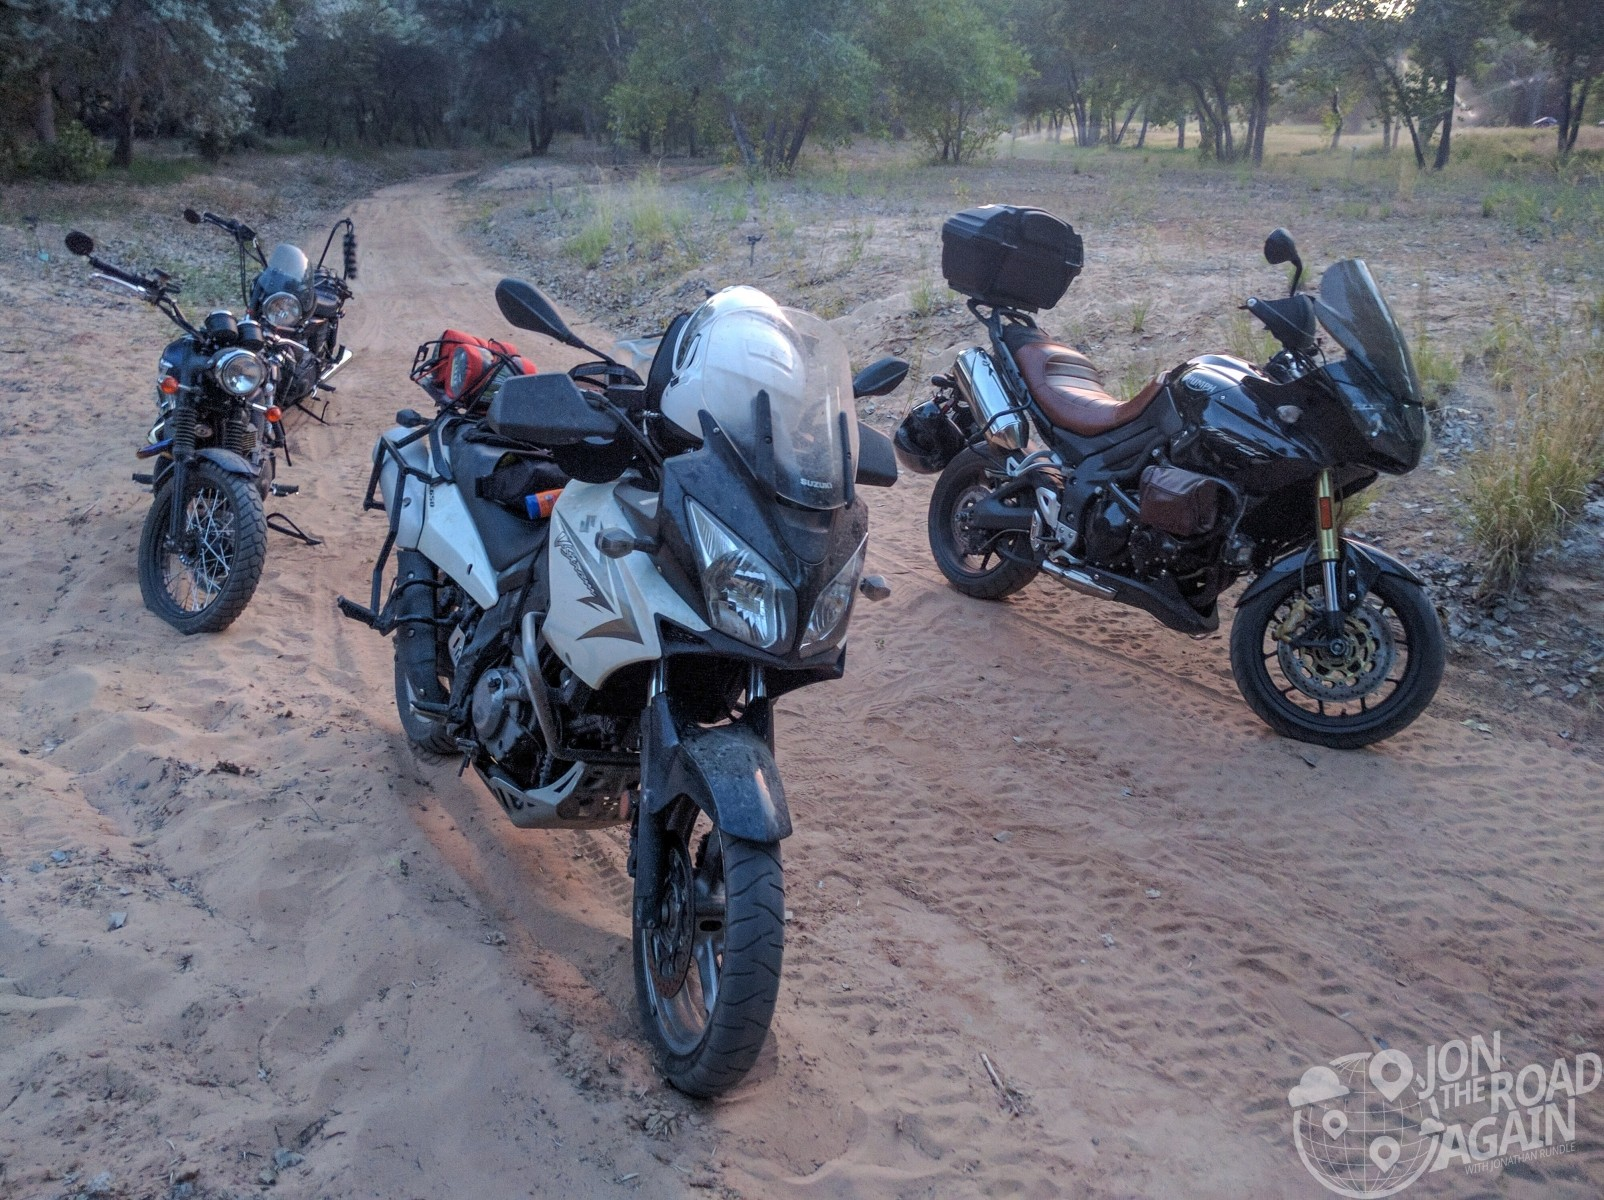 Motocamping in Zion